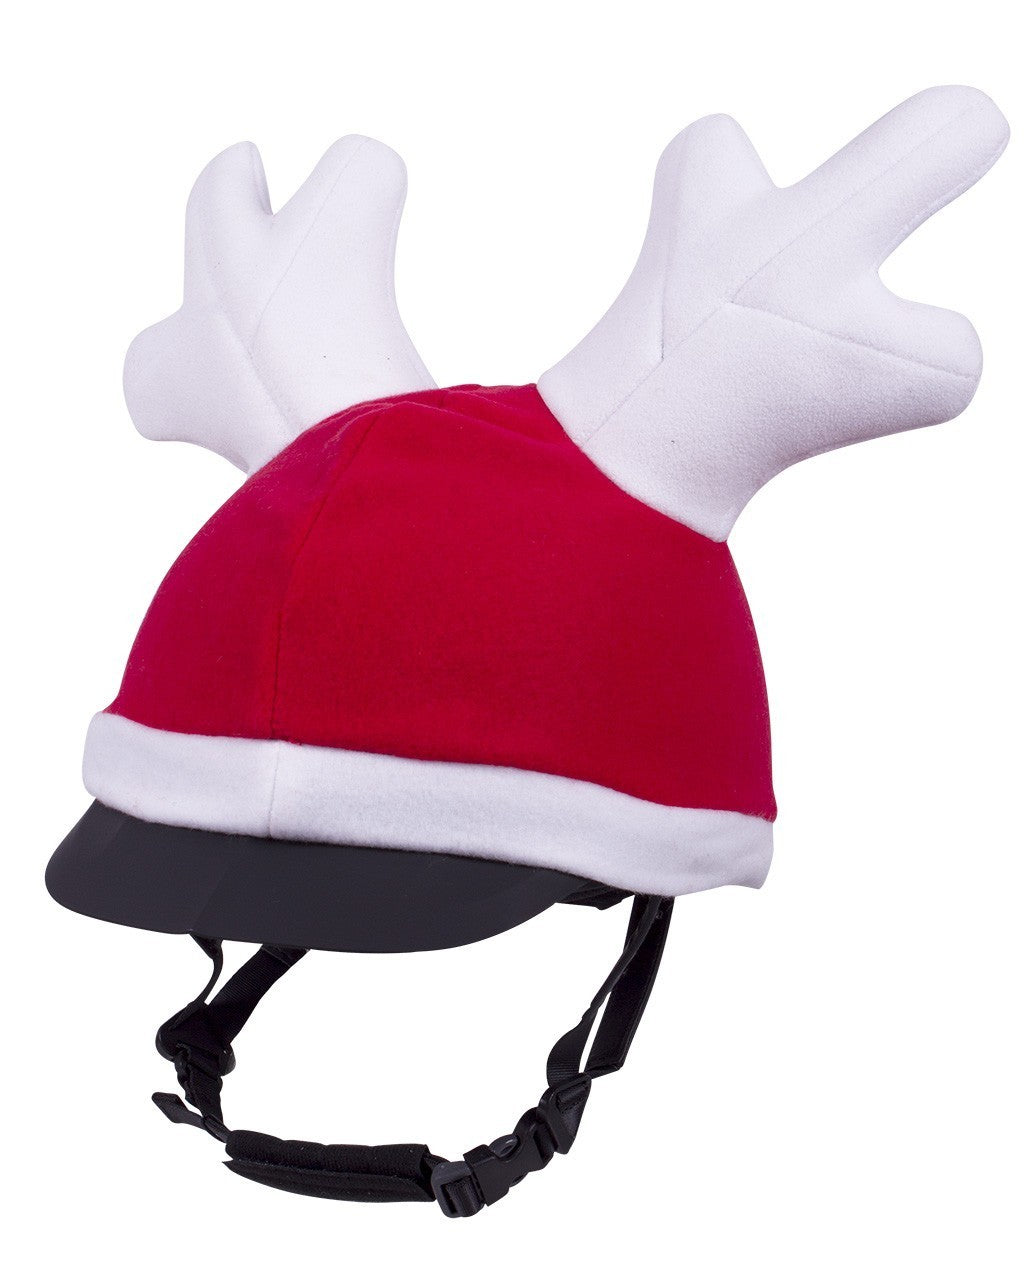 Reindeer riding hat cover